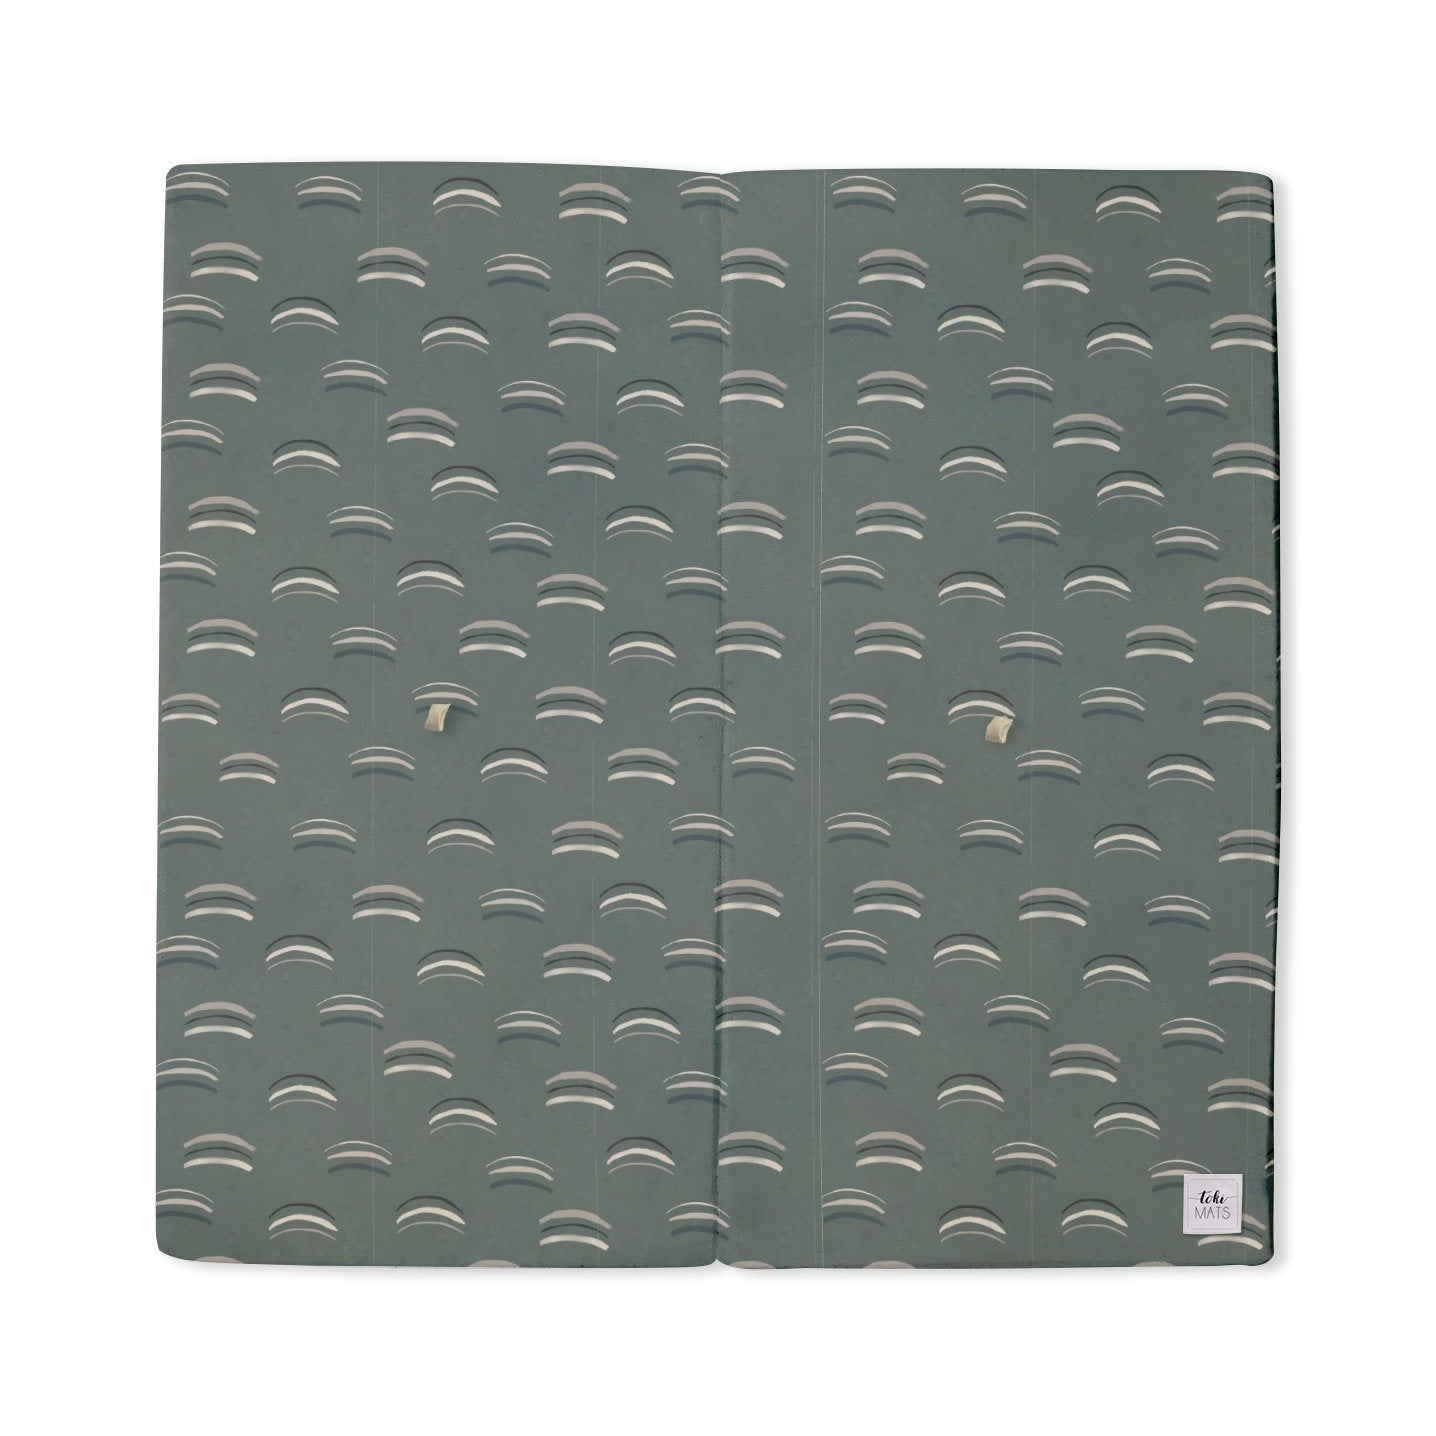 Arches Padded Playmat - Forest - Organic